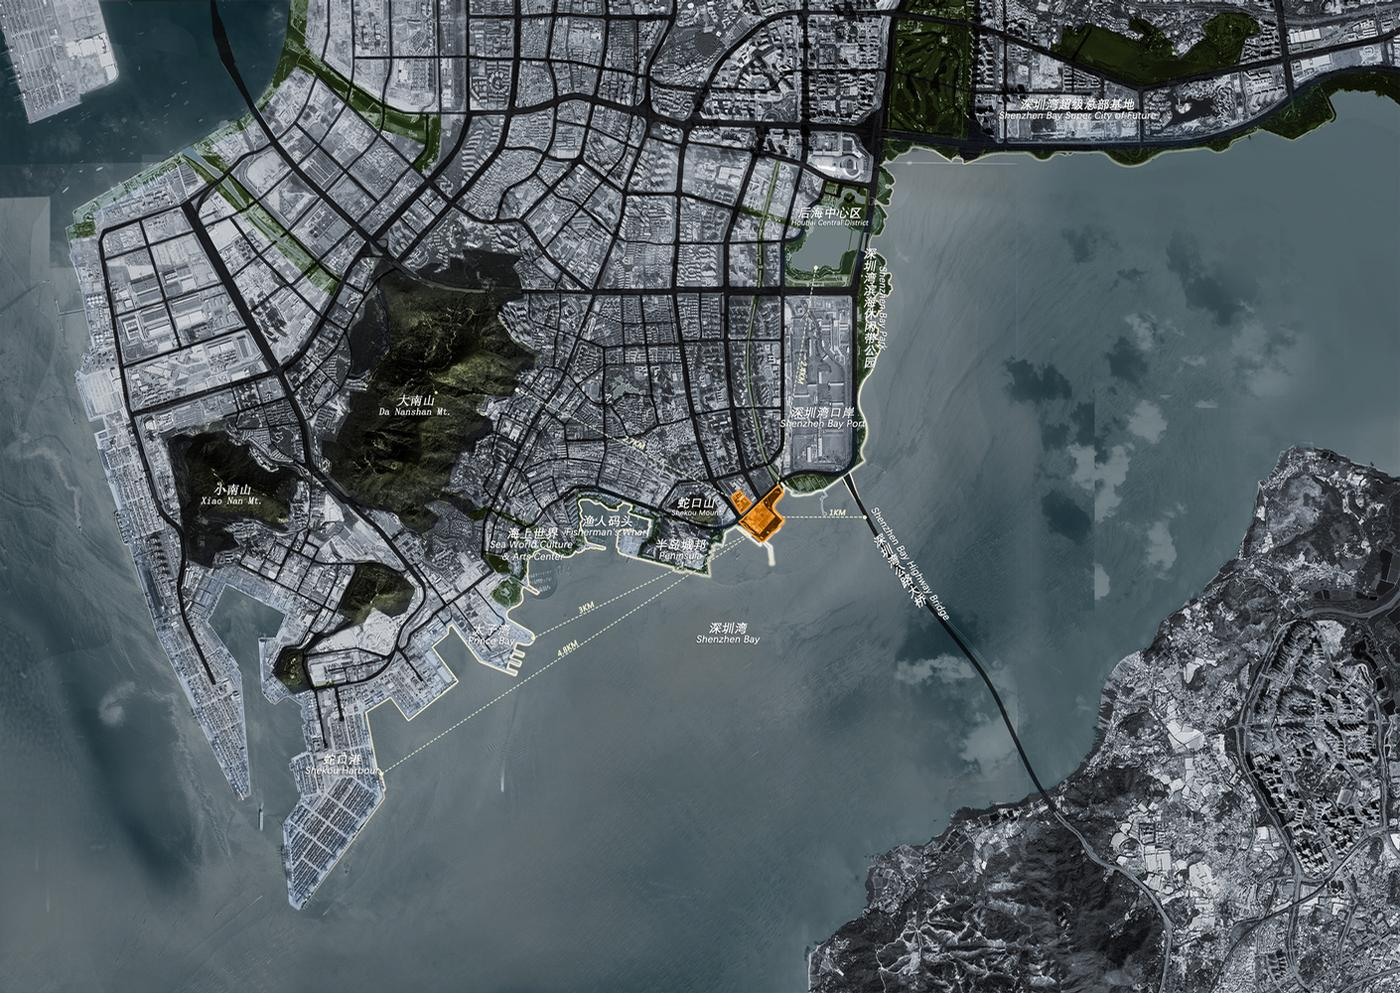 The opera house project will extend into the sea resembling a peninsula, overlooking Hong Kong to the south across Shenzhen Bay / Bureau of Planning and Natural Resources of Shenzhen Municipality